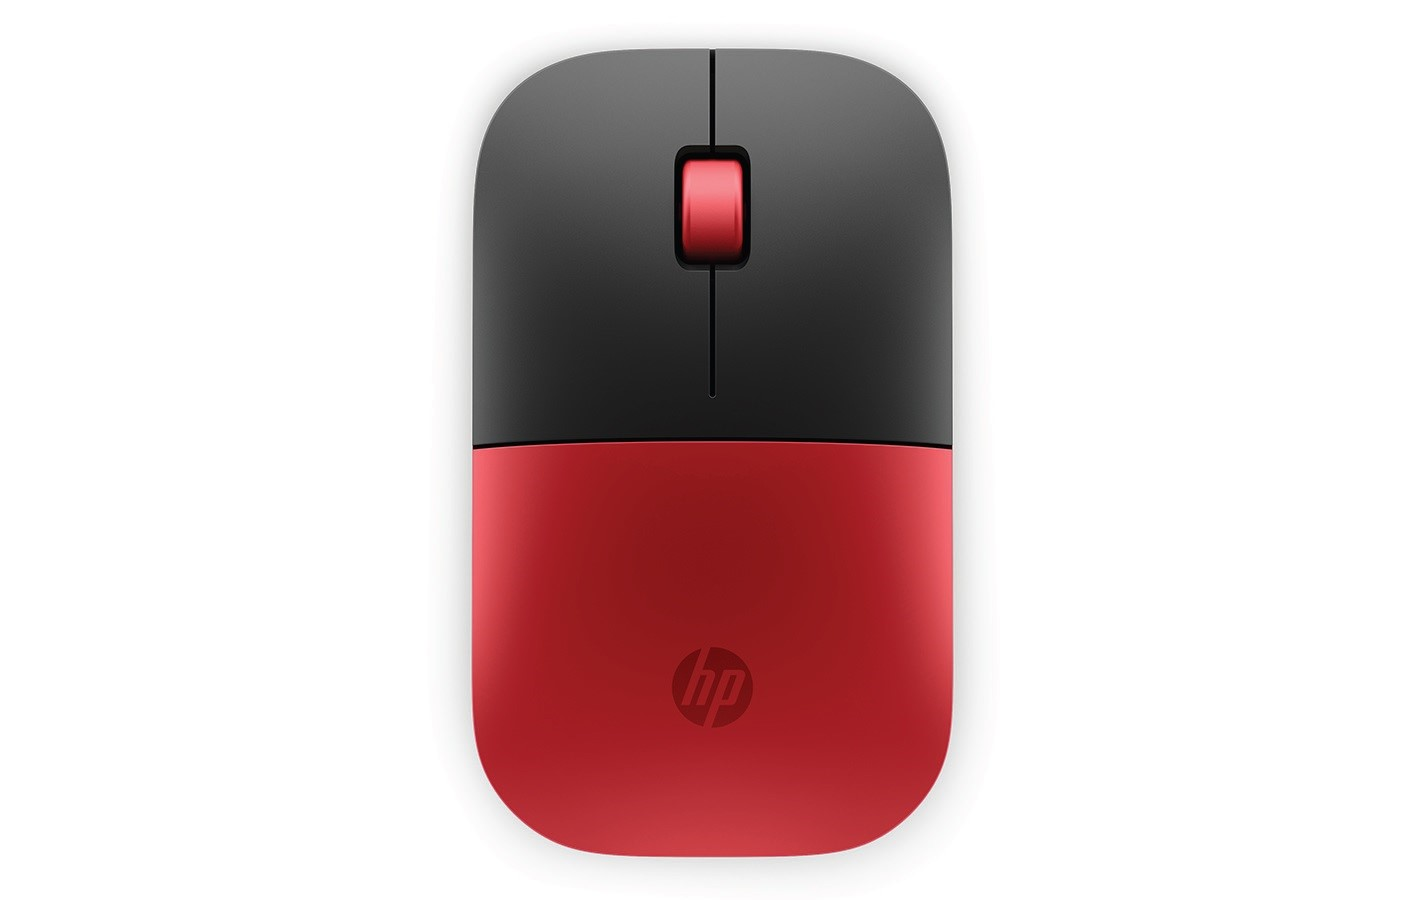 HP Z3700 Wireless Mouse - Cardinal Red - MOUSE